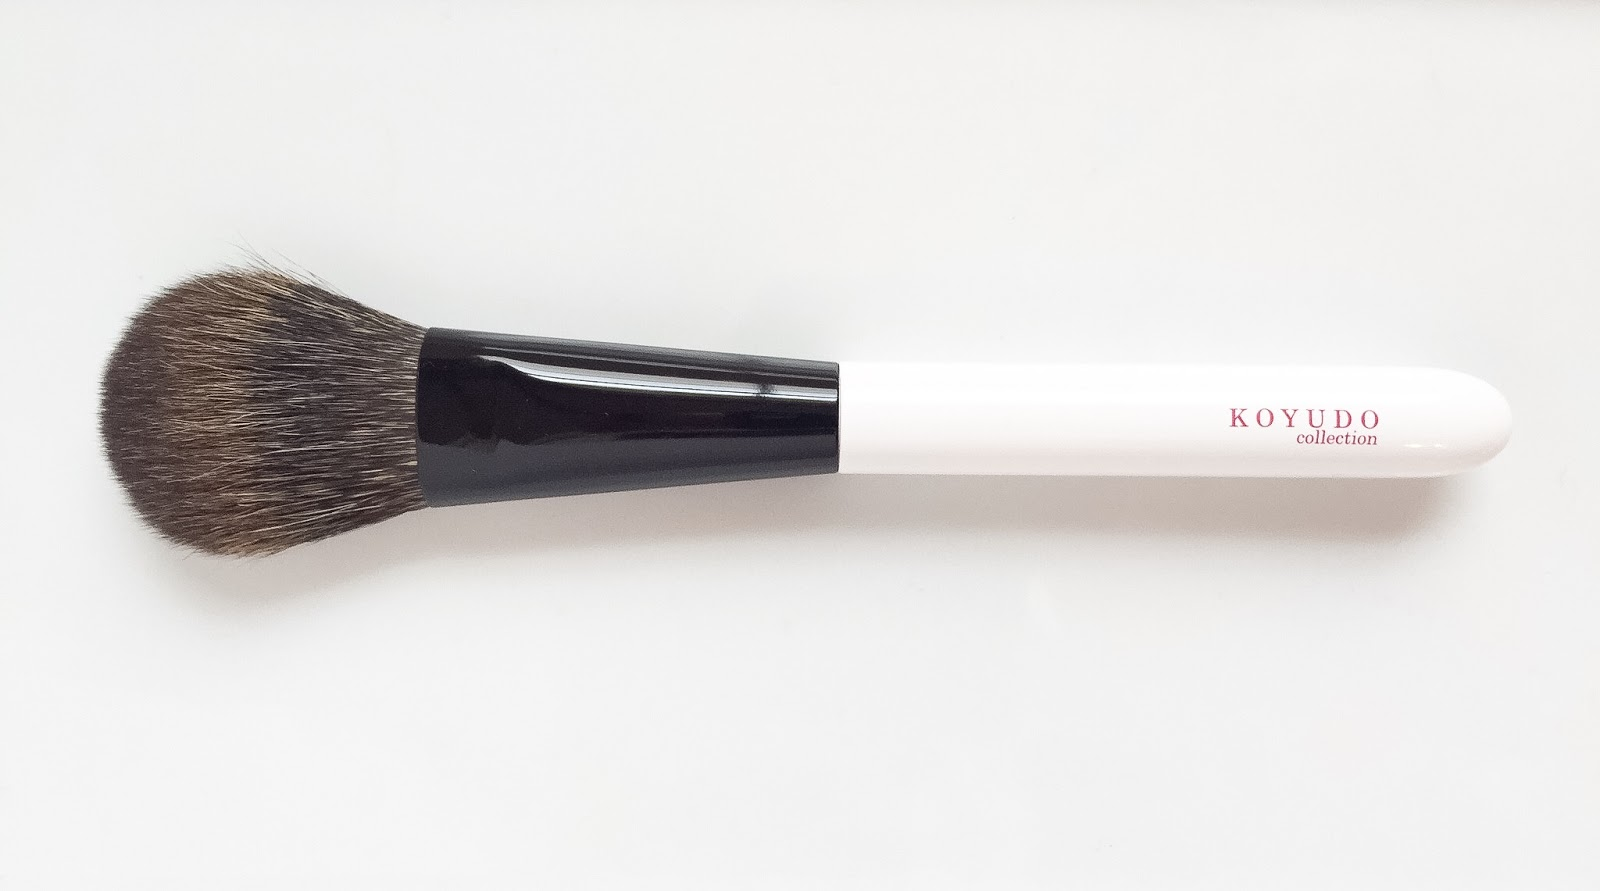 I love Japanese brand Koyudo brushes. I've talked about them multiple times before. Their BP High Class Series is their top end of brushes.